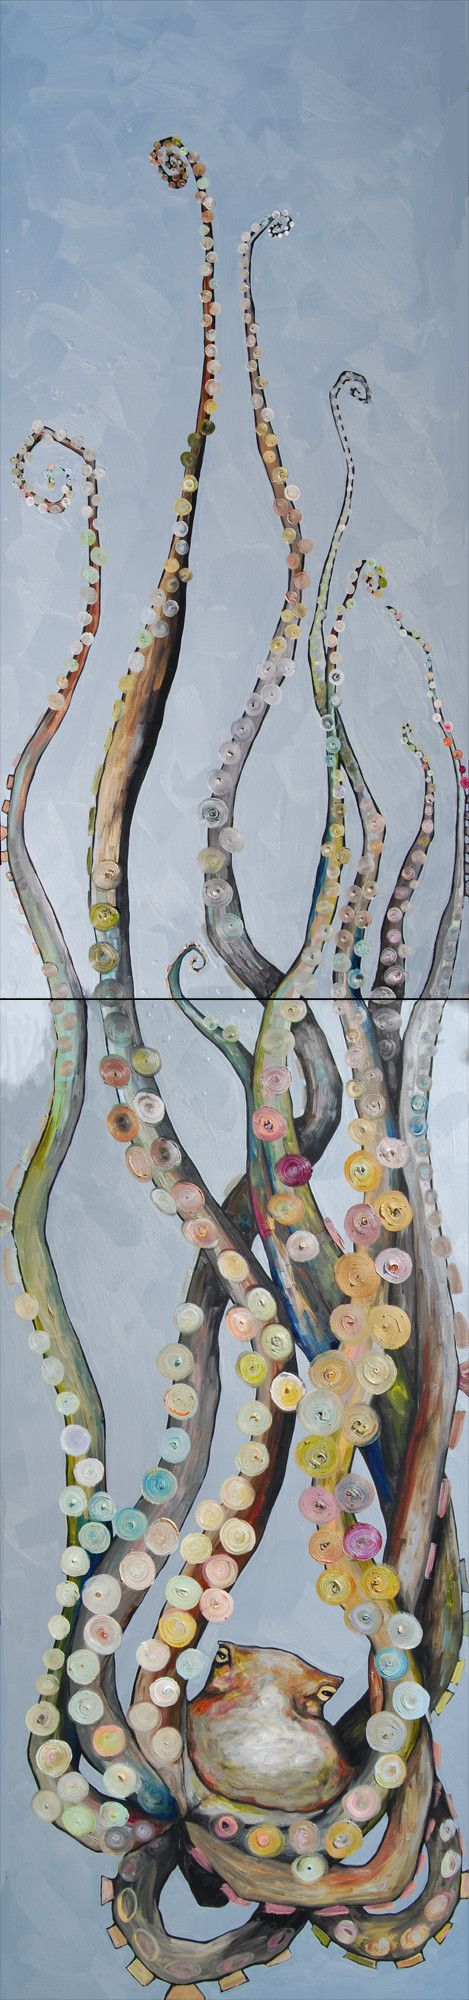 Super  Tall Octopus in Metallic Sea Salt Blue by Eli Halpin at elihalpin.com prints available at http://elihalpin.com/products/octopus-diptych-canvas-reproduction